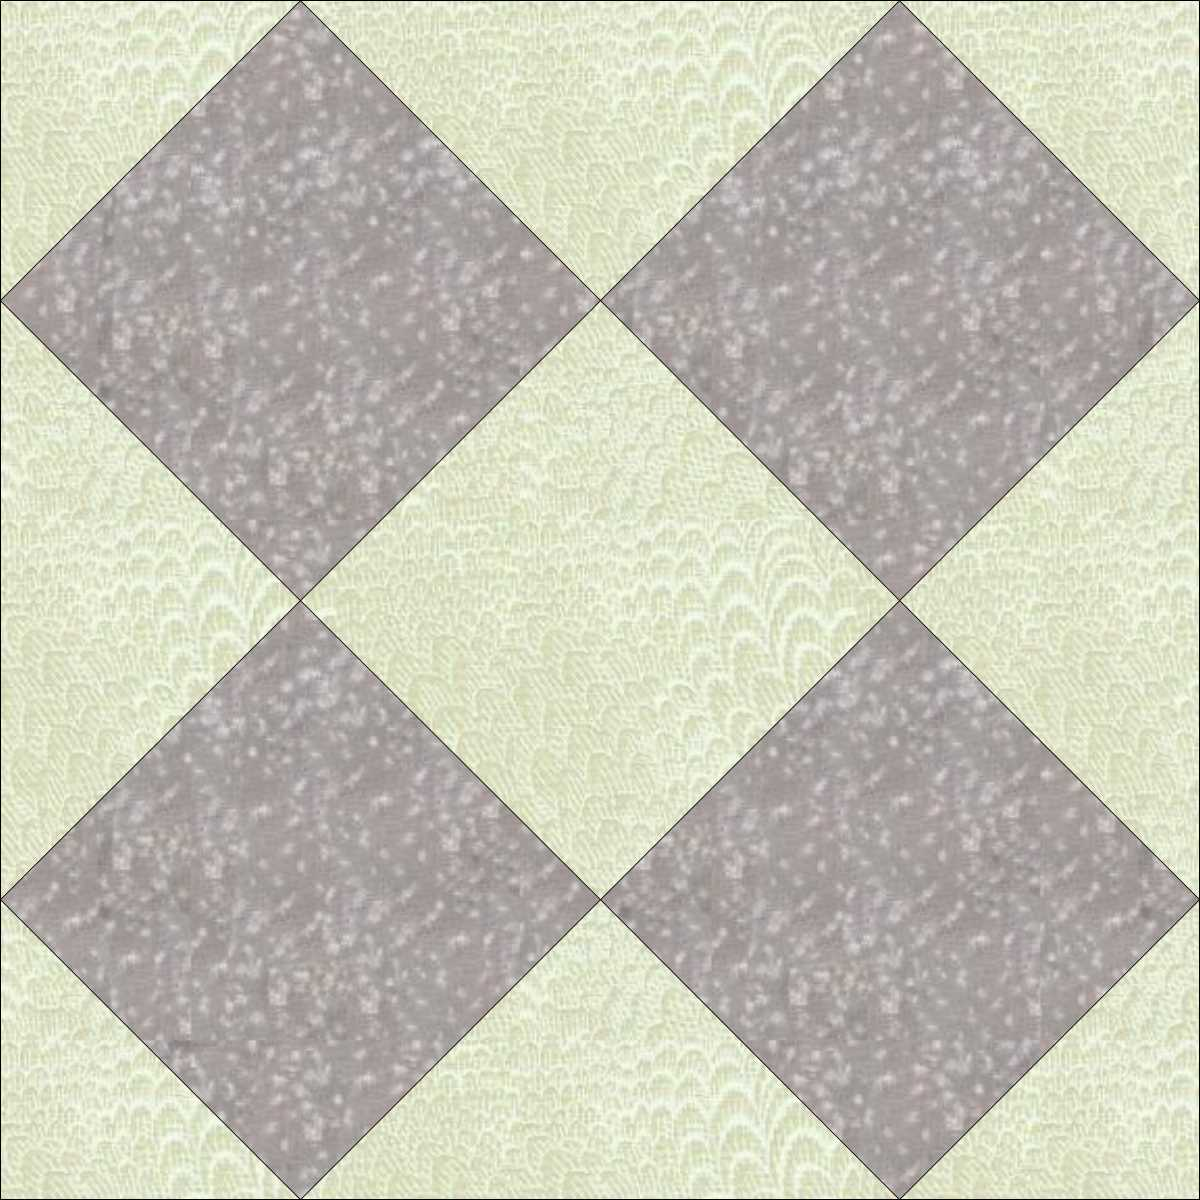 A brief history on the Flying Geese quilt block. Includes modern flying geese block inspiration and a flying geese conversion chart to scale blocks up or down. Learn how to make 1 Flying Geese block or 4 at a time!